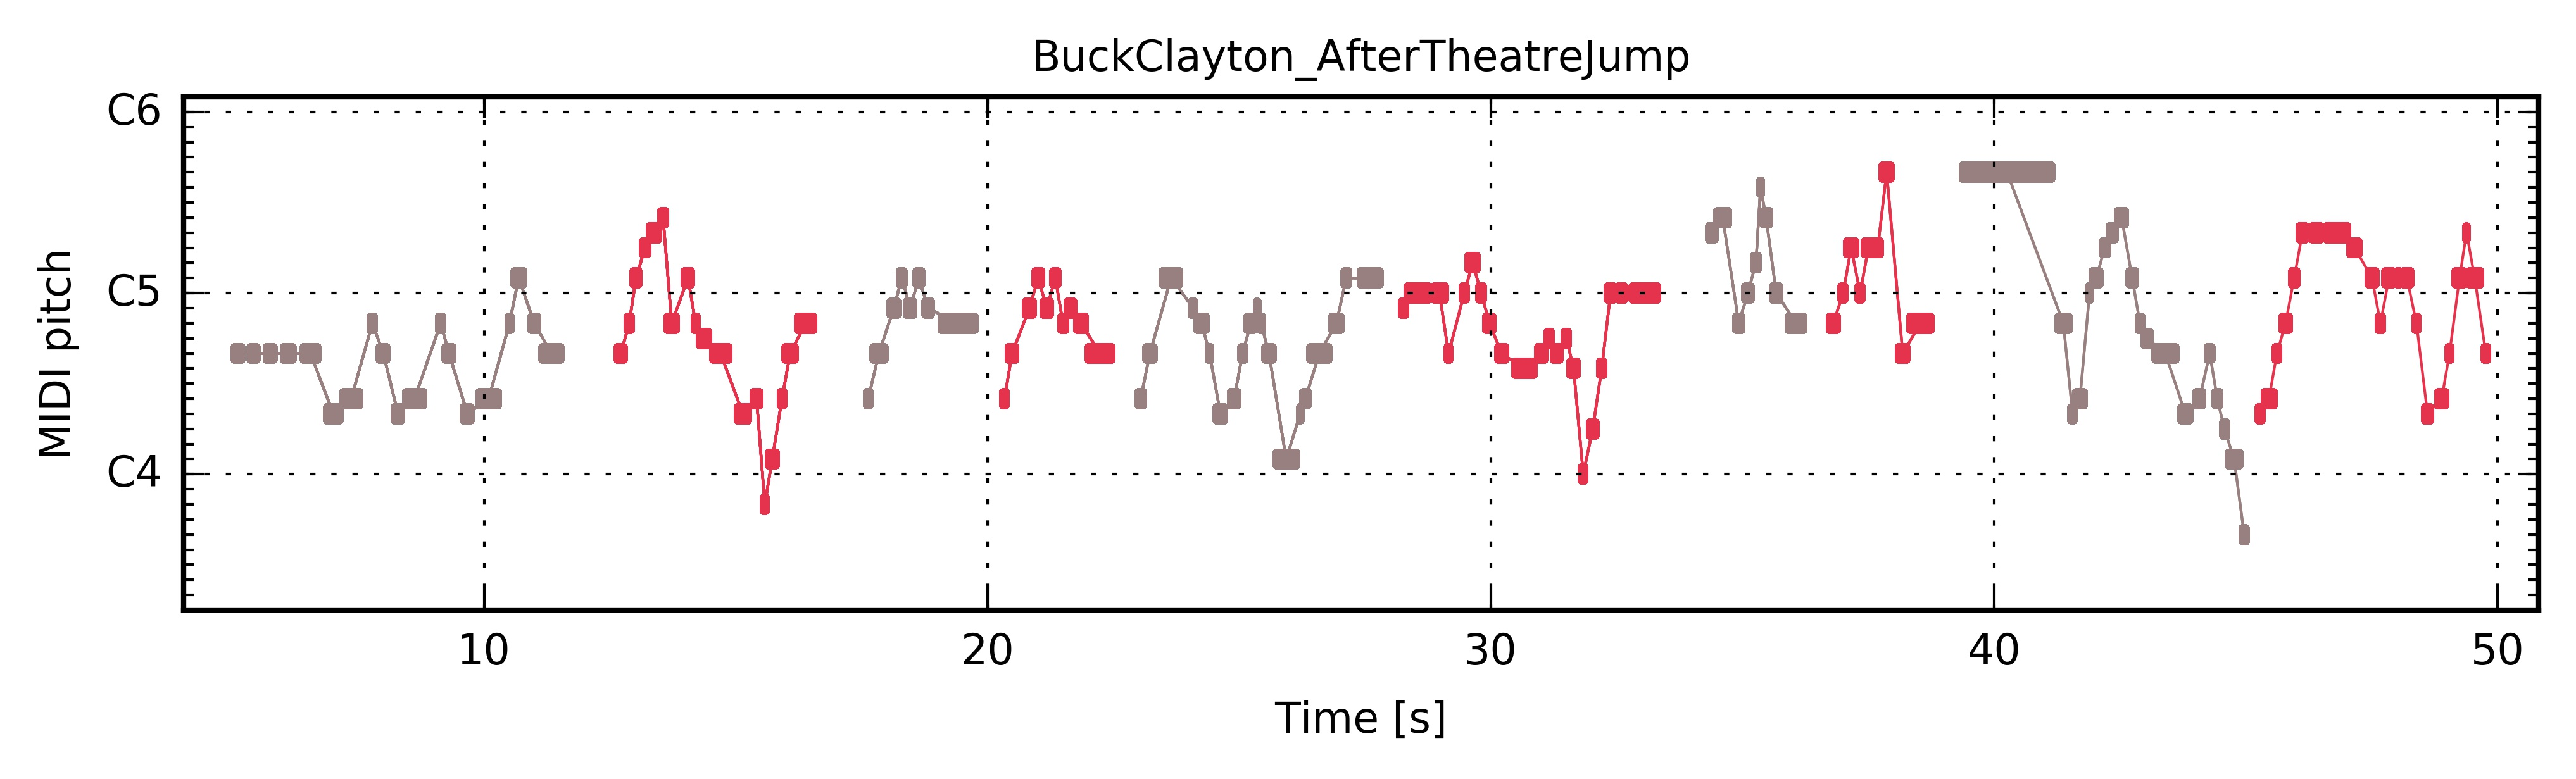 ../../_images/PianoRoll_BuckClayton_AfterTheatreJump.jpg